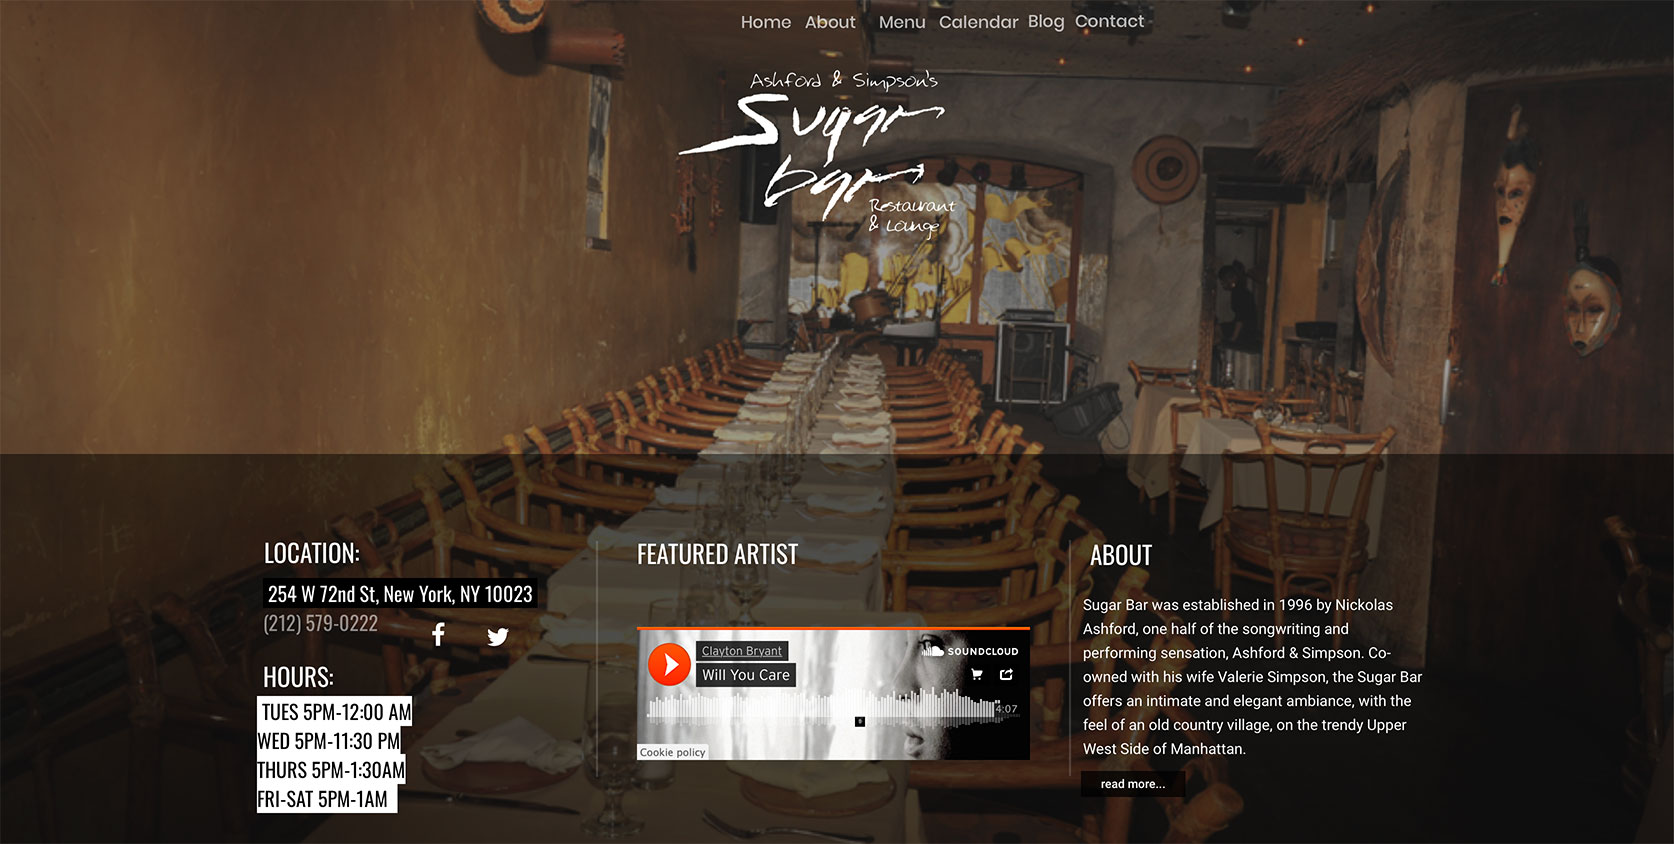 Ashford & Simpson Sugar Bar - Website